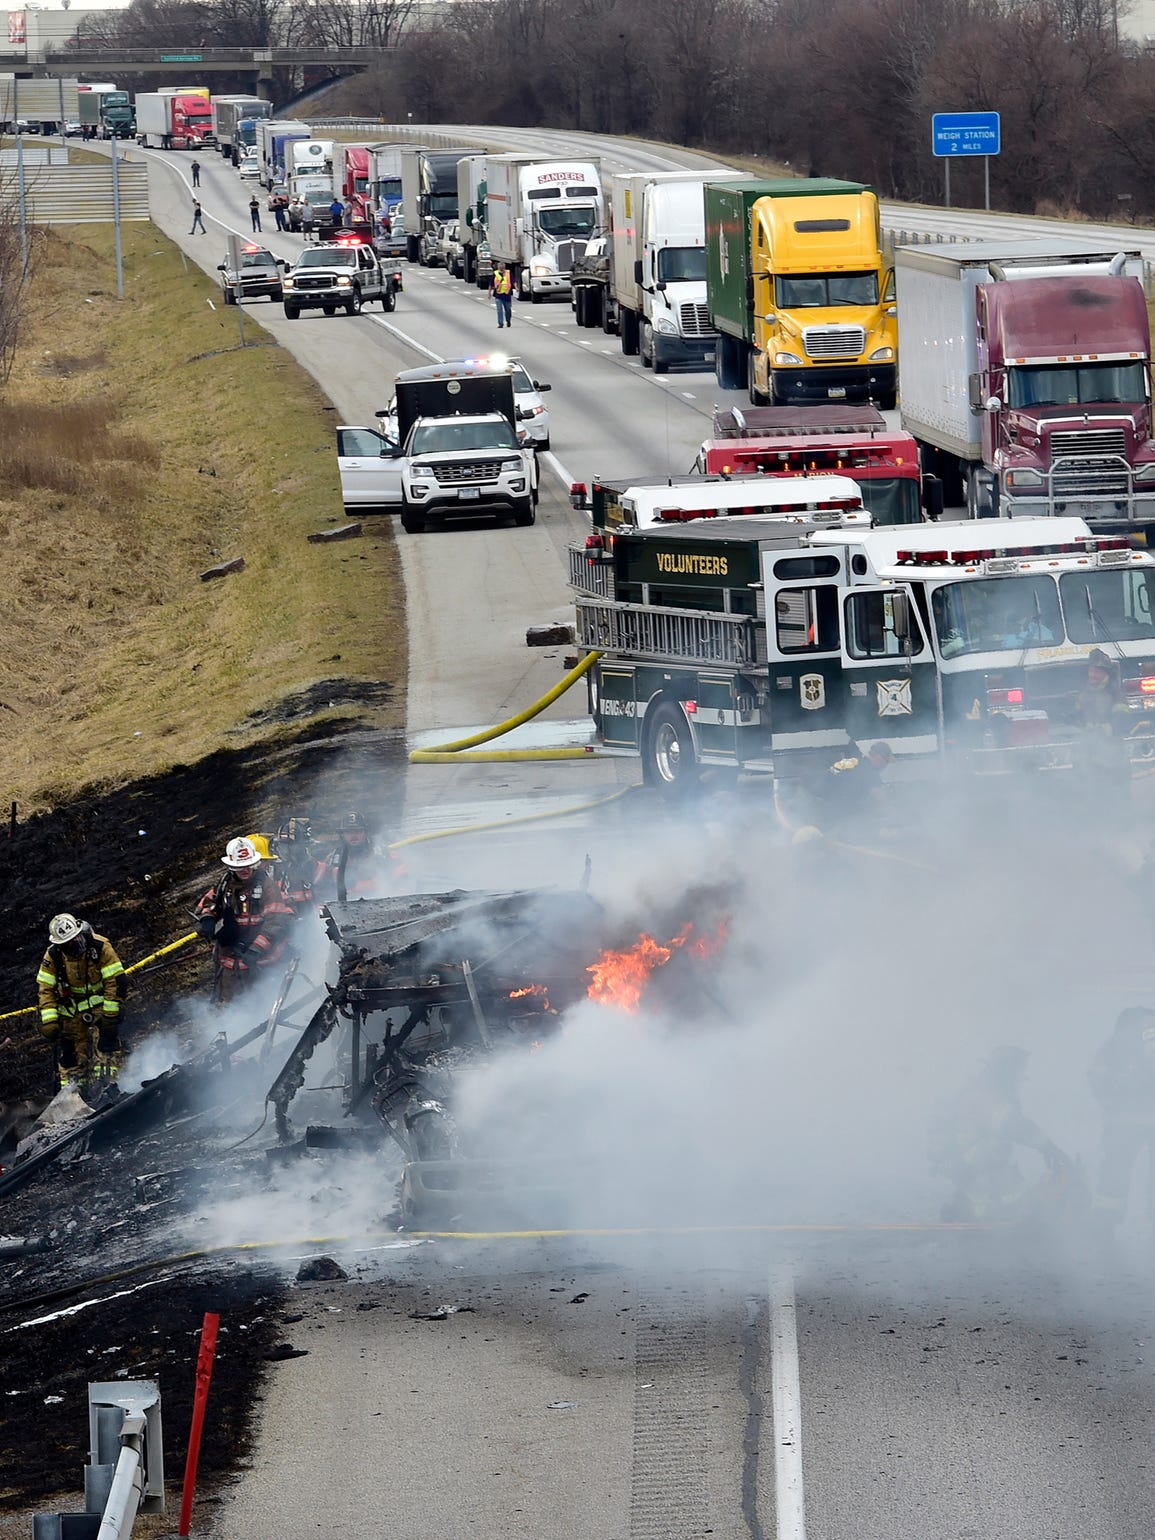 Firefighters extinguish a blaze that destroyed a camper